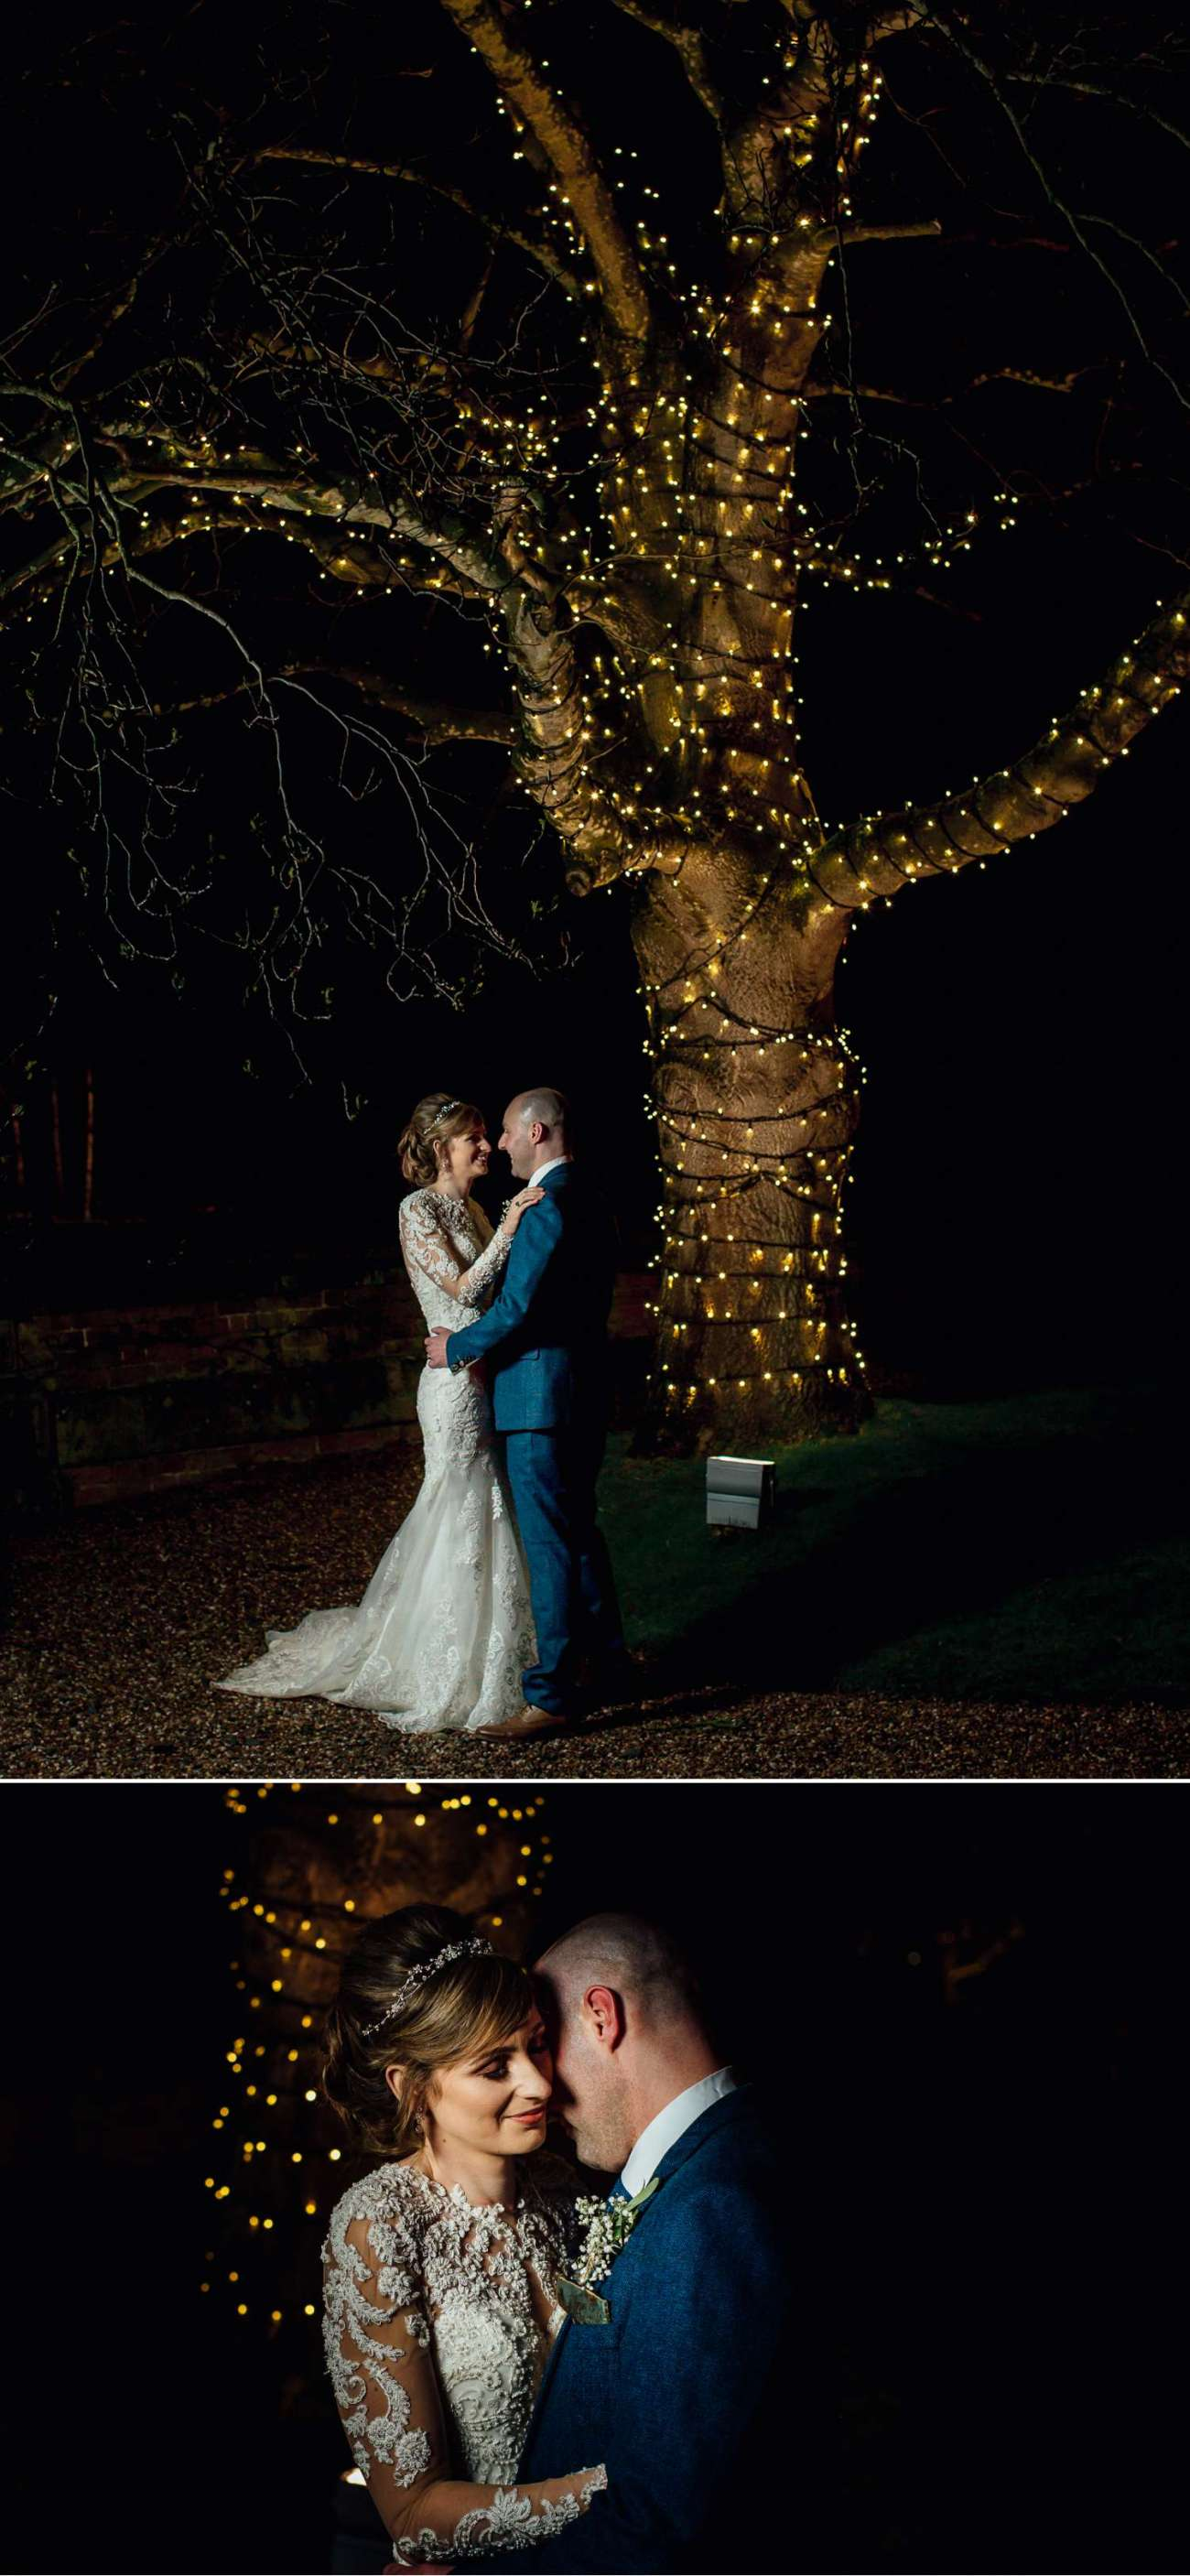 Iscoyd Park lit up tree bride and groom portraits